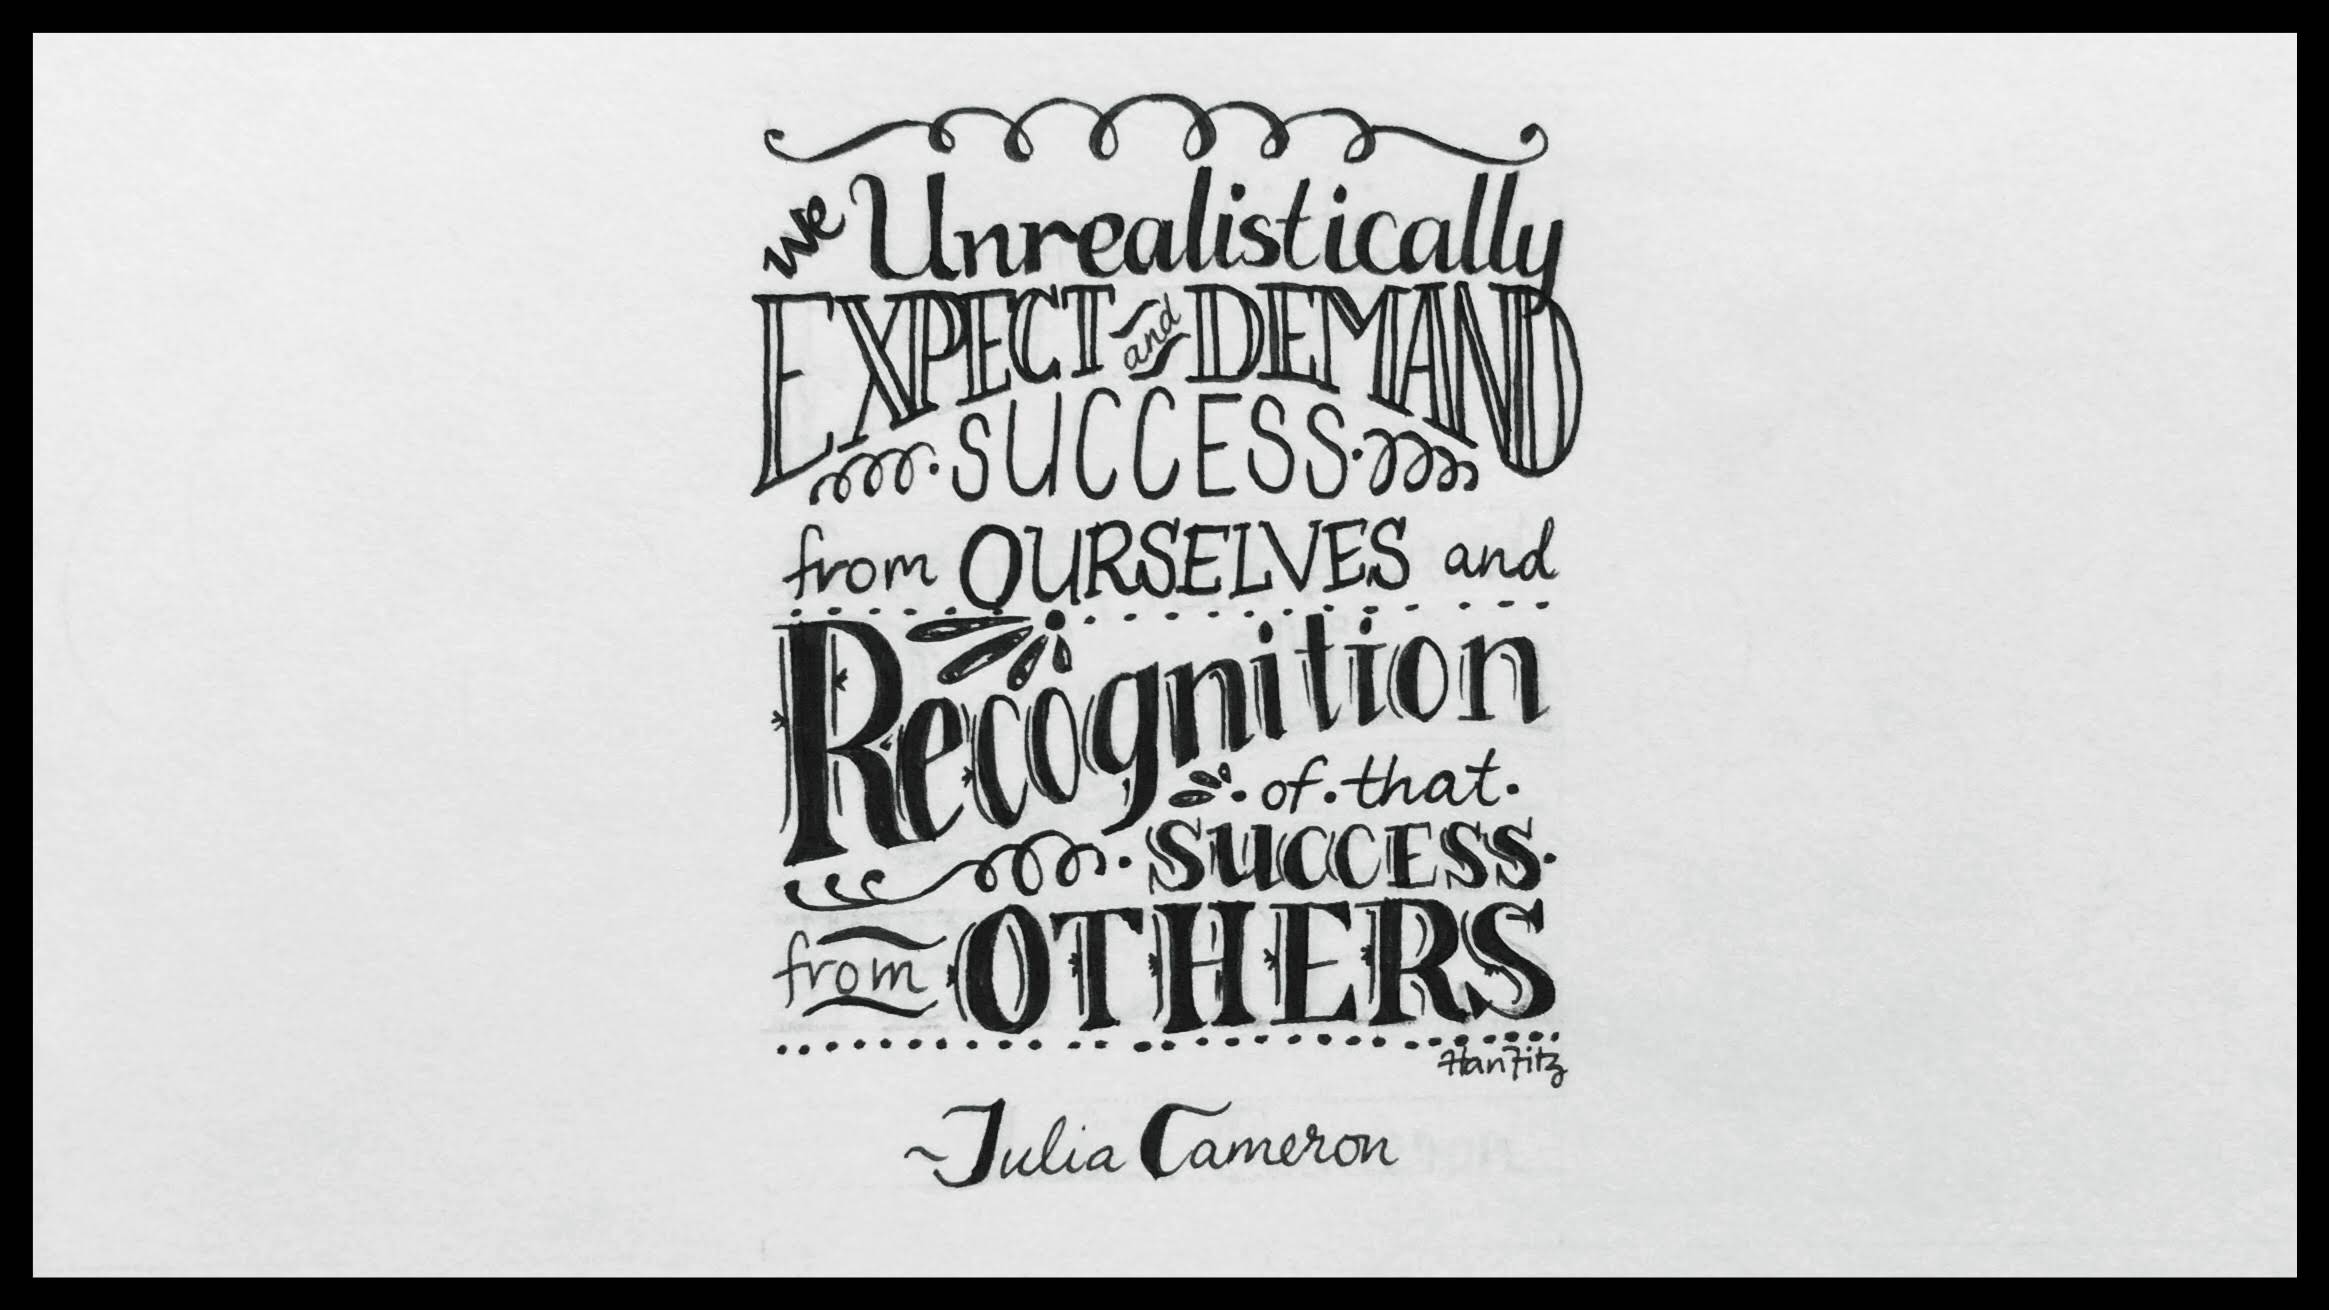 """We unrealistically expect and demand success from ourselves and recognition of that success from others."" - Julia Cameron"